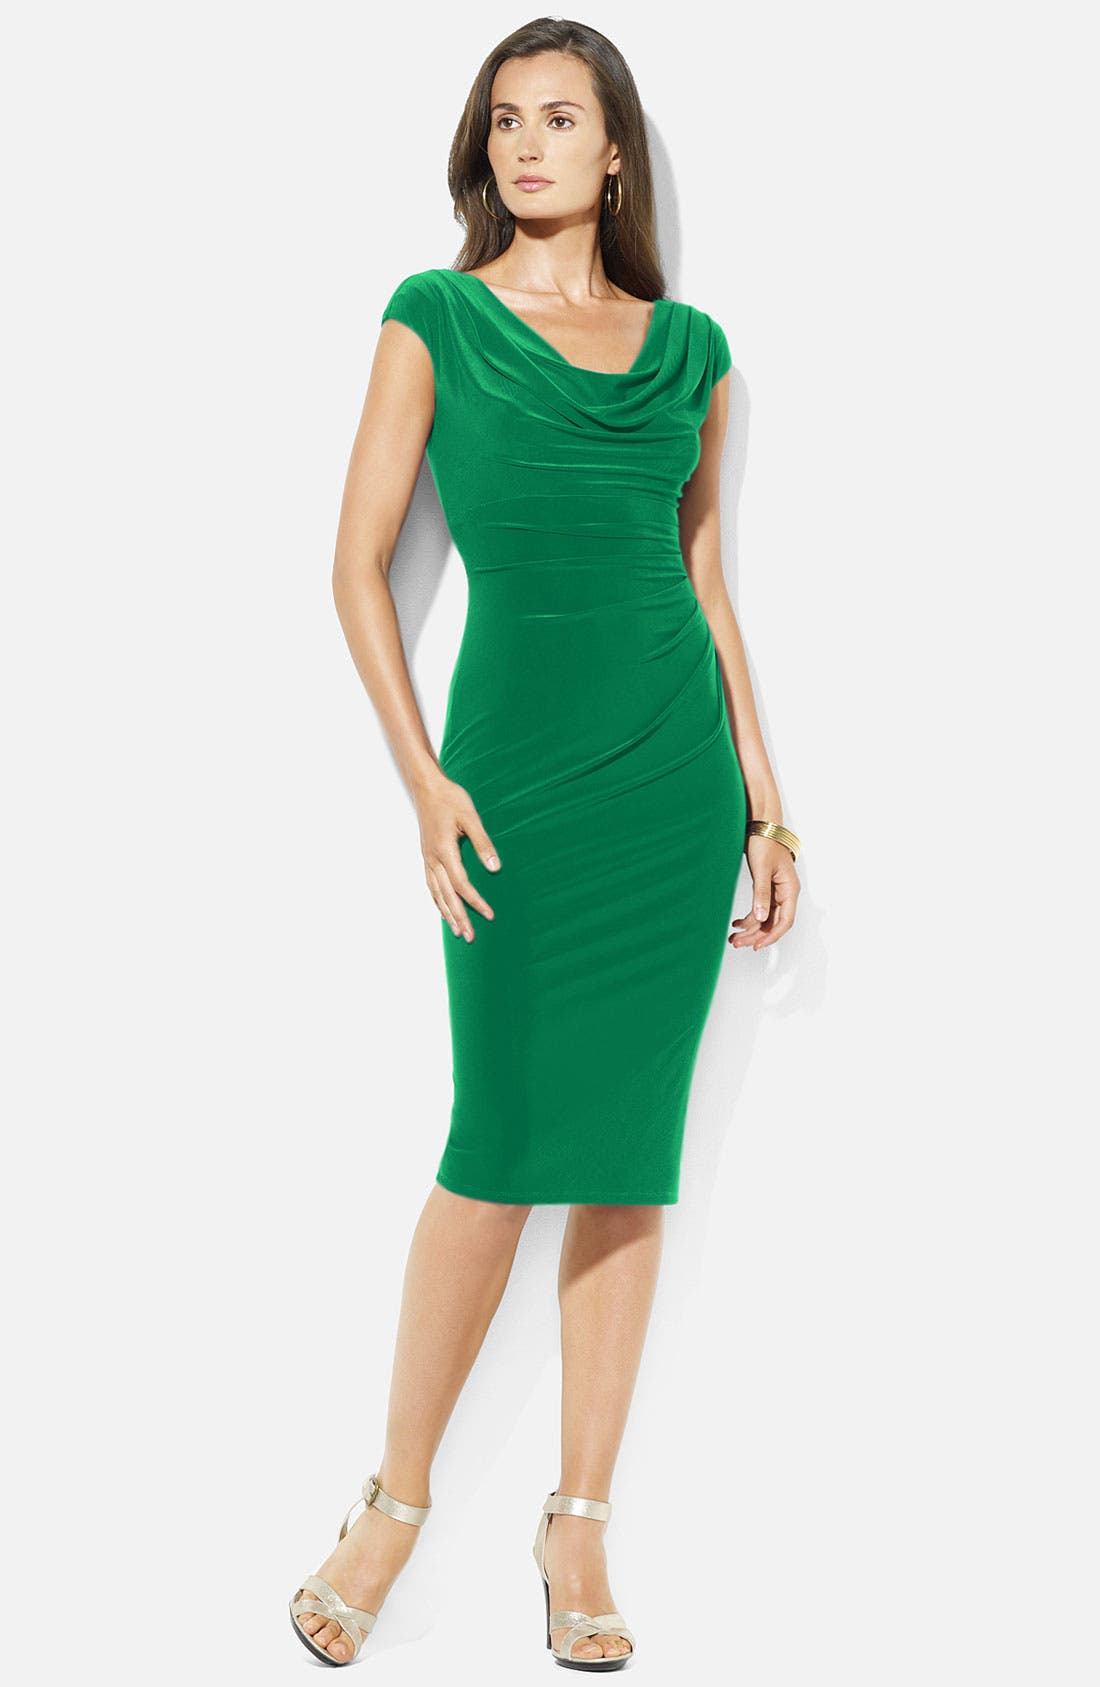 Cowl Neck Dresses with Sleeves